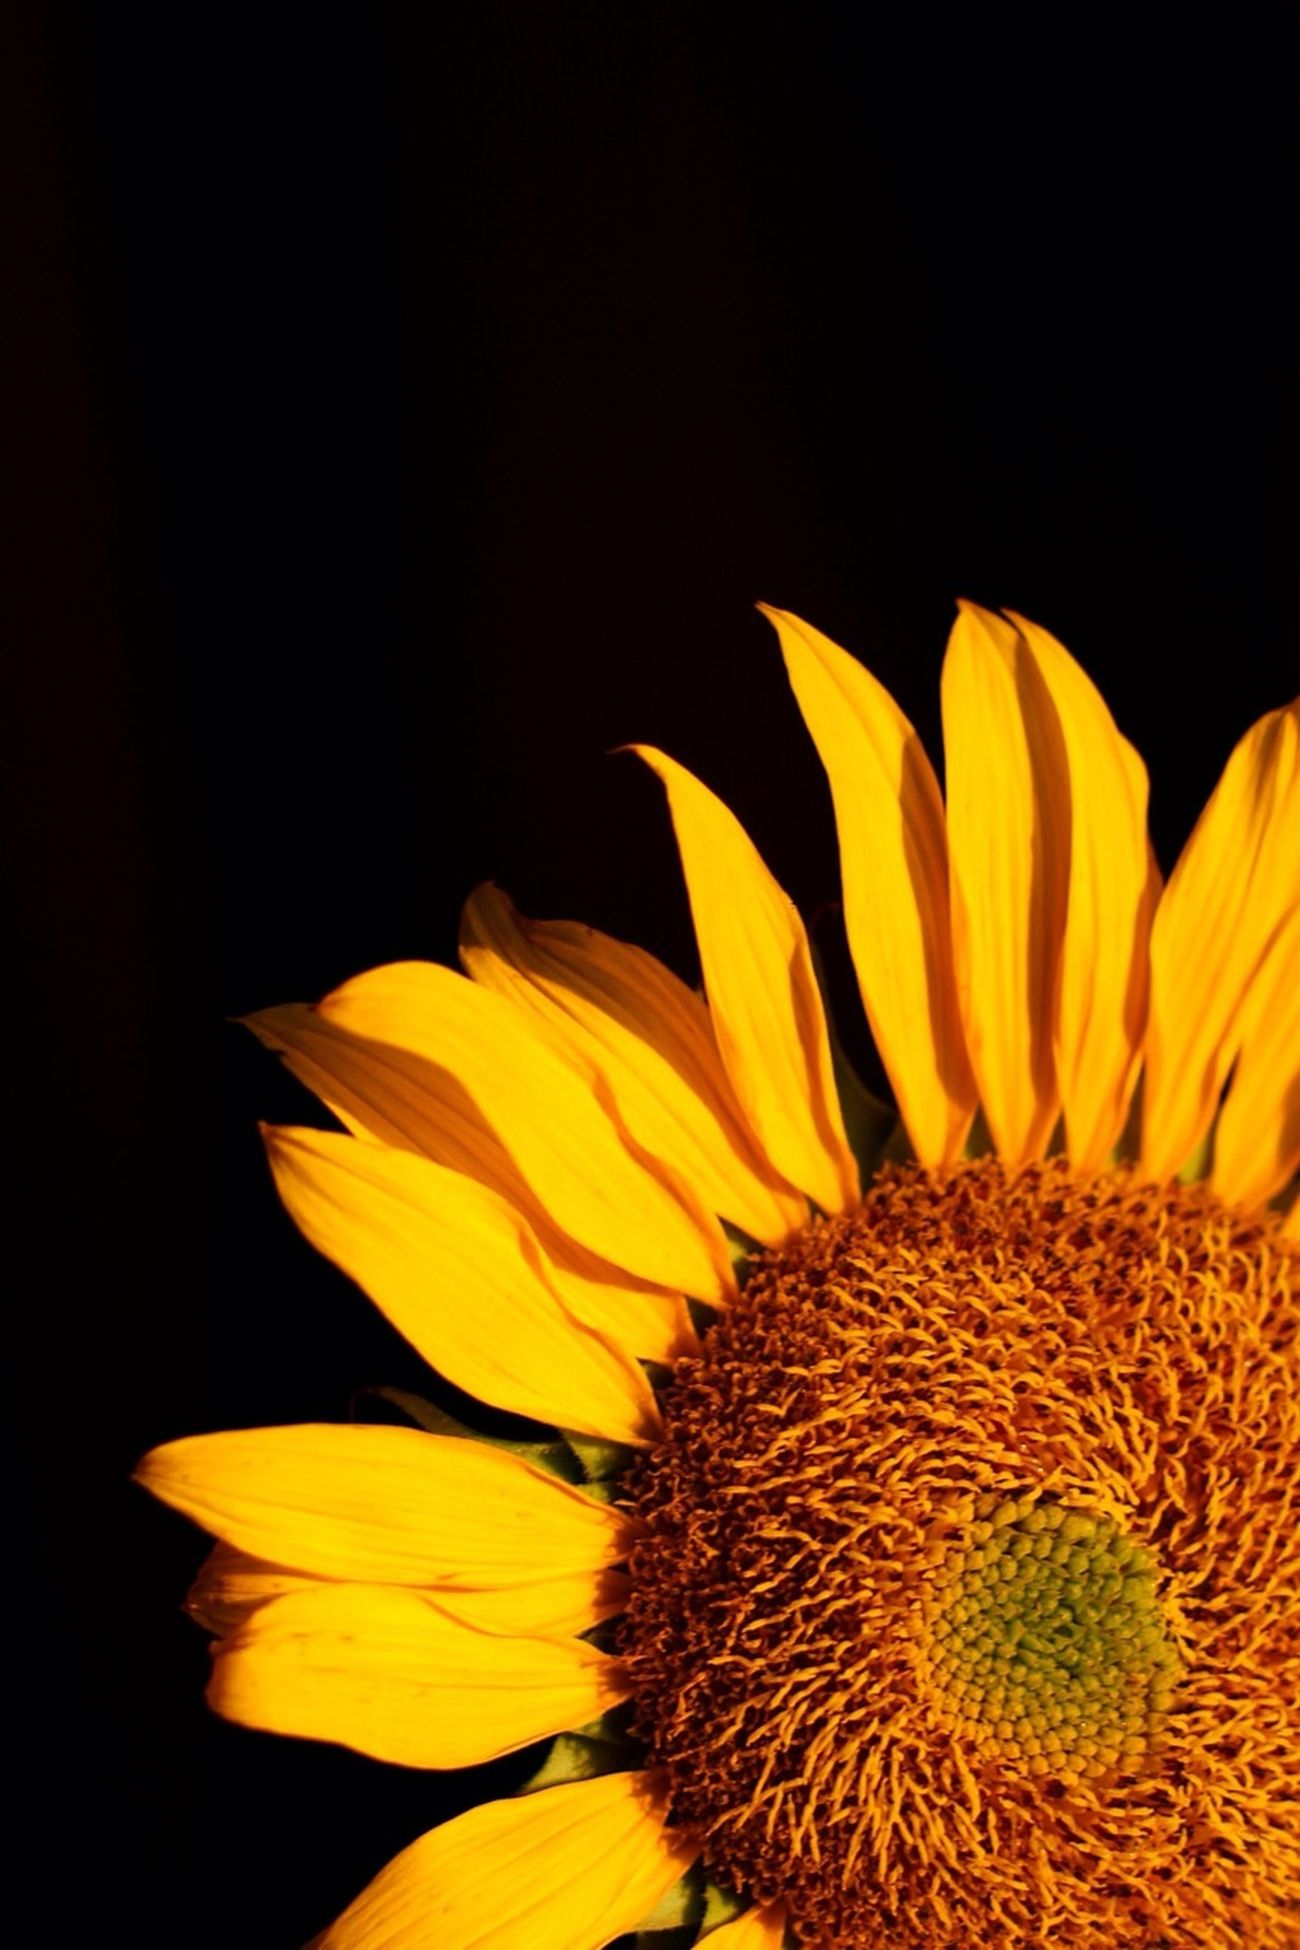 flower, yellow, petal, flower head, fragility, freshness, sunflower, beauty in nature, close-up, growth, studio shot, nature, single flower, plant, pollen, blooming, black background, natural pattern, blossom, no people